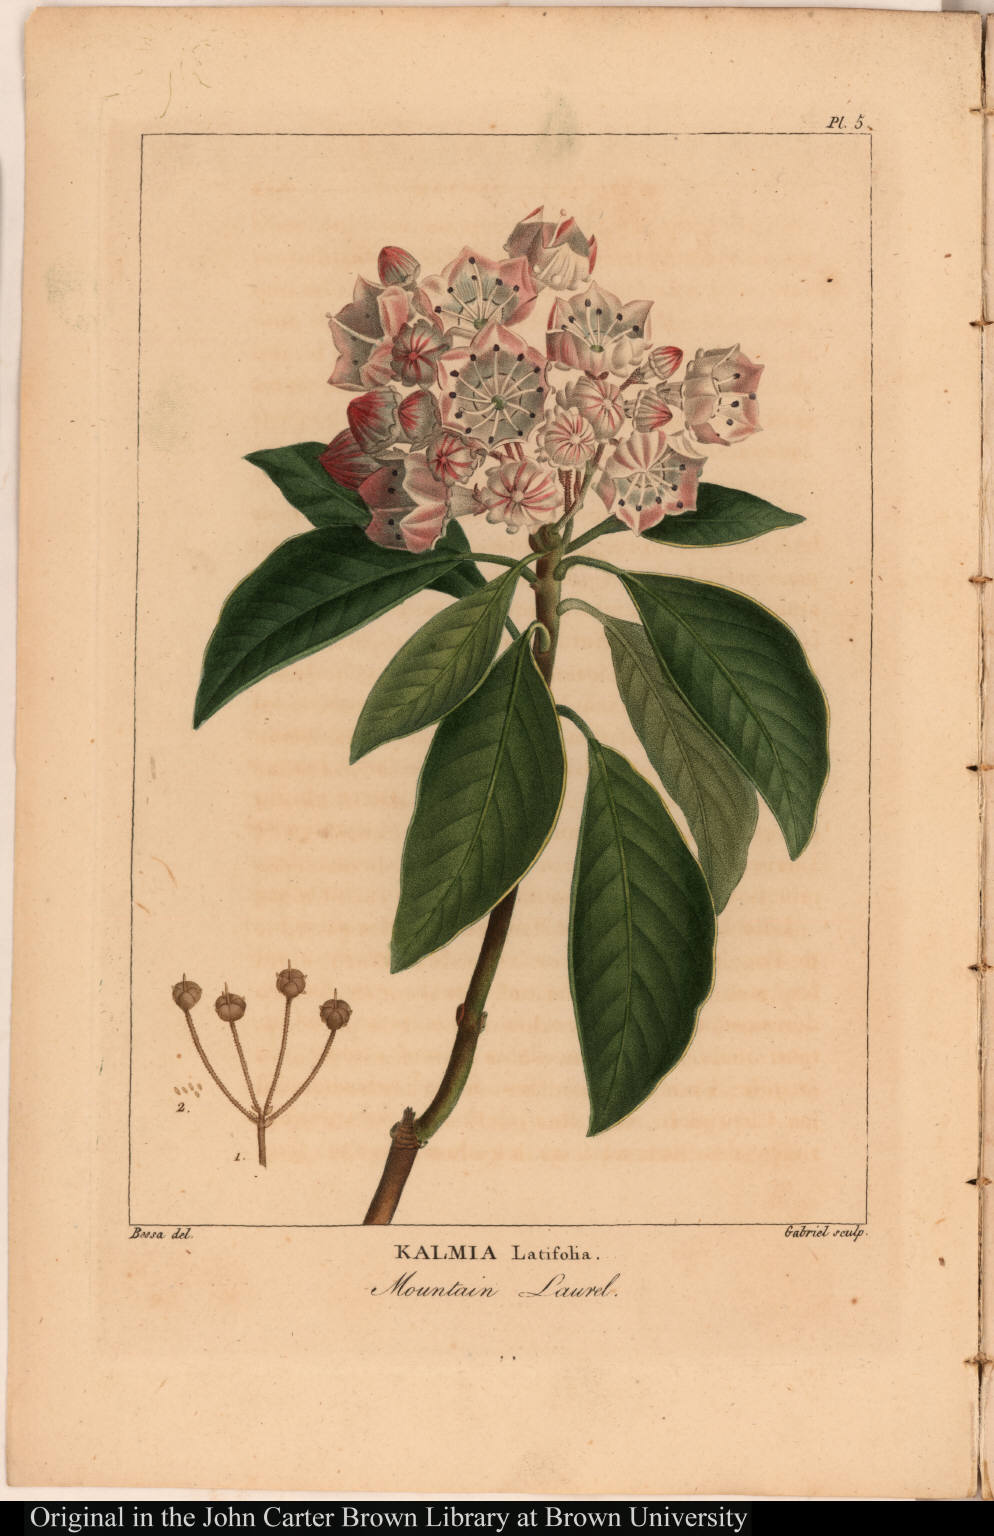 Kalmia Latifolia. Mountain Laurel.